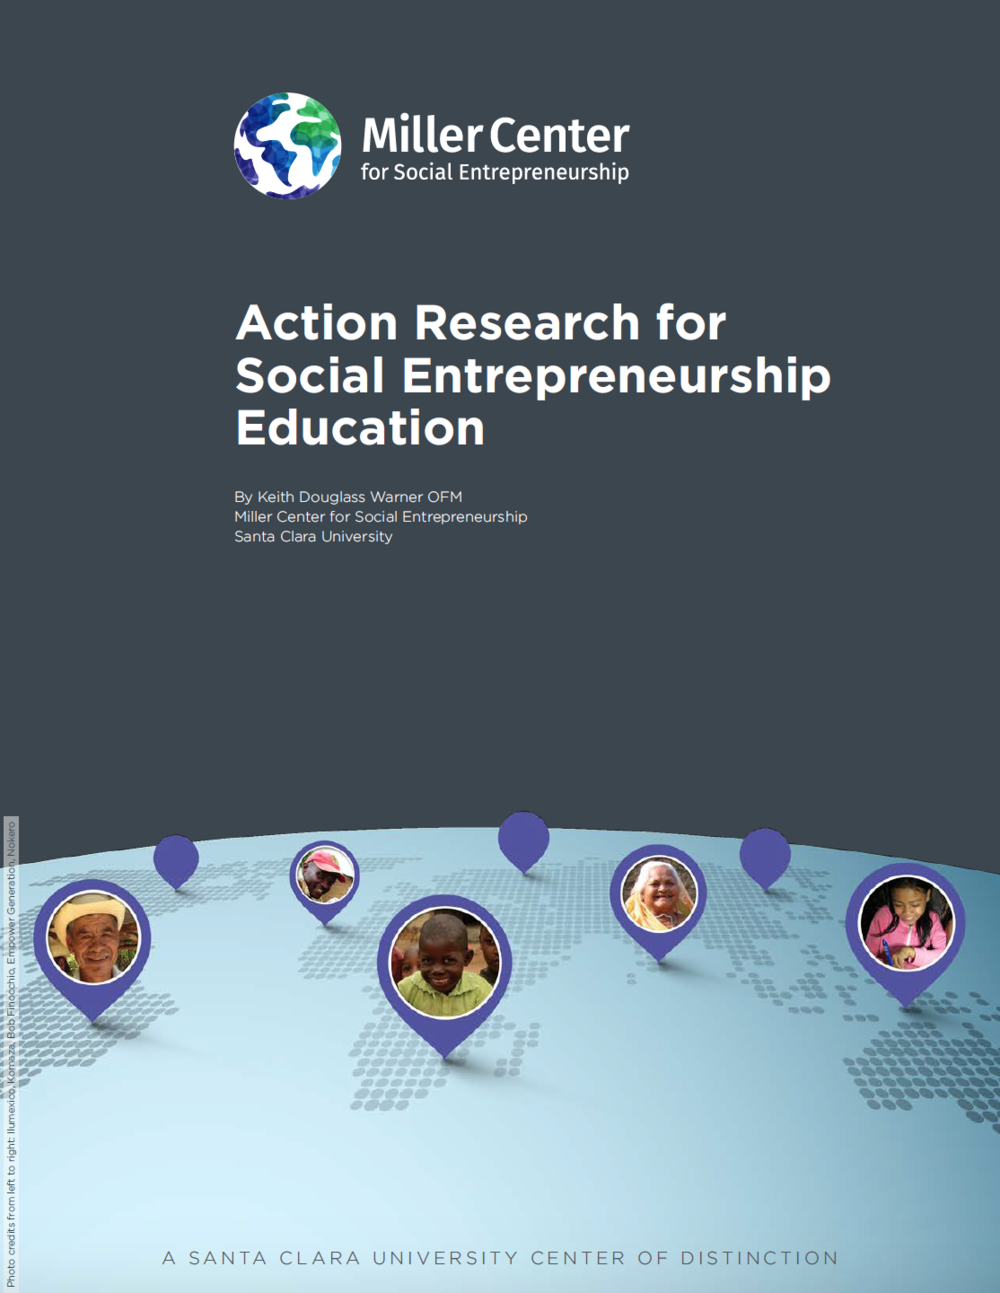 thesis on entrepreneurship education The effect of early entrepreneurship education: evidence from a randomized field experiment  the aim of this study is to analyze the effectiveness of early entrepreneurship education.